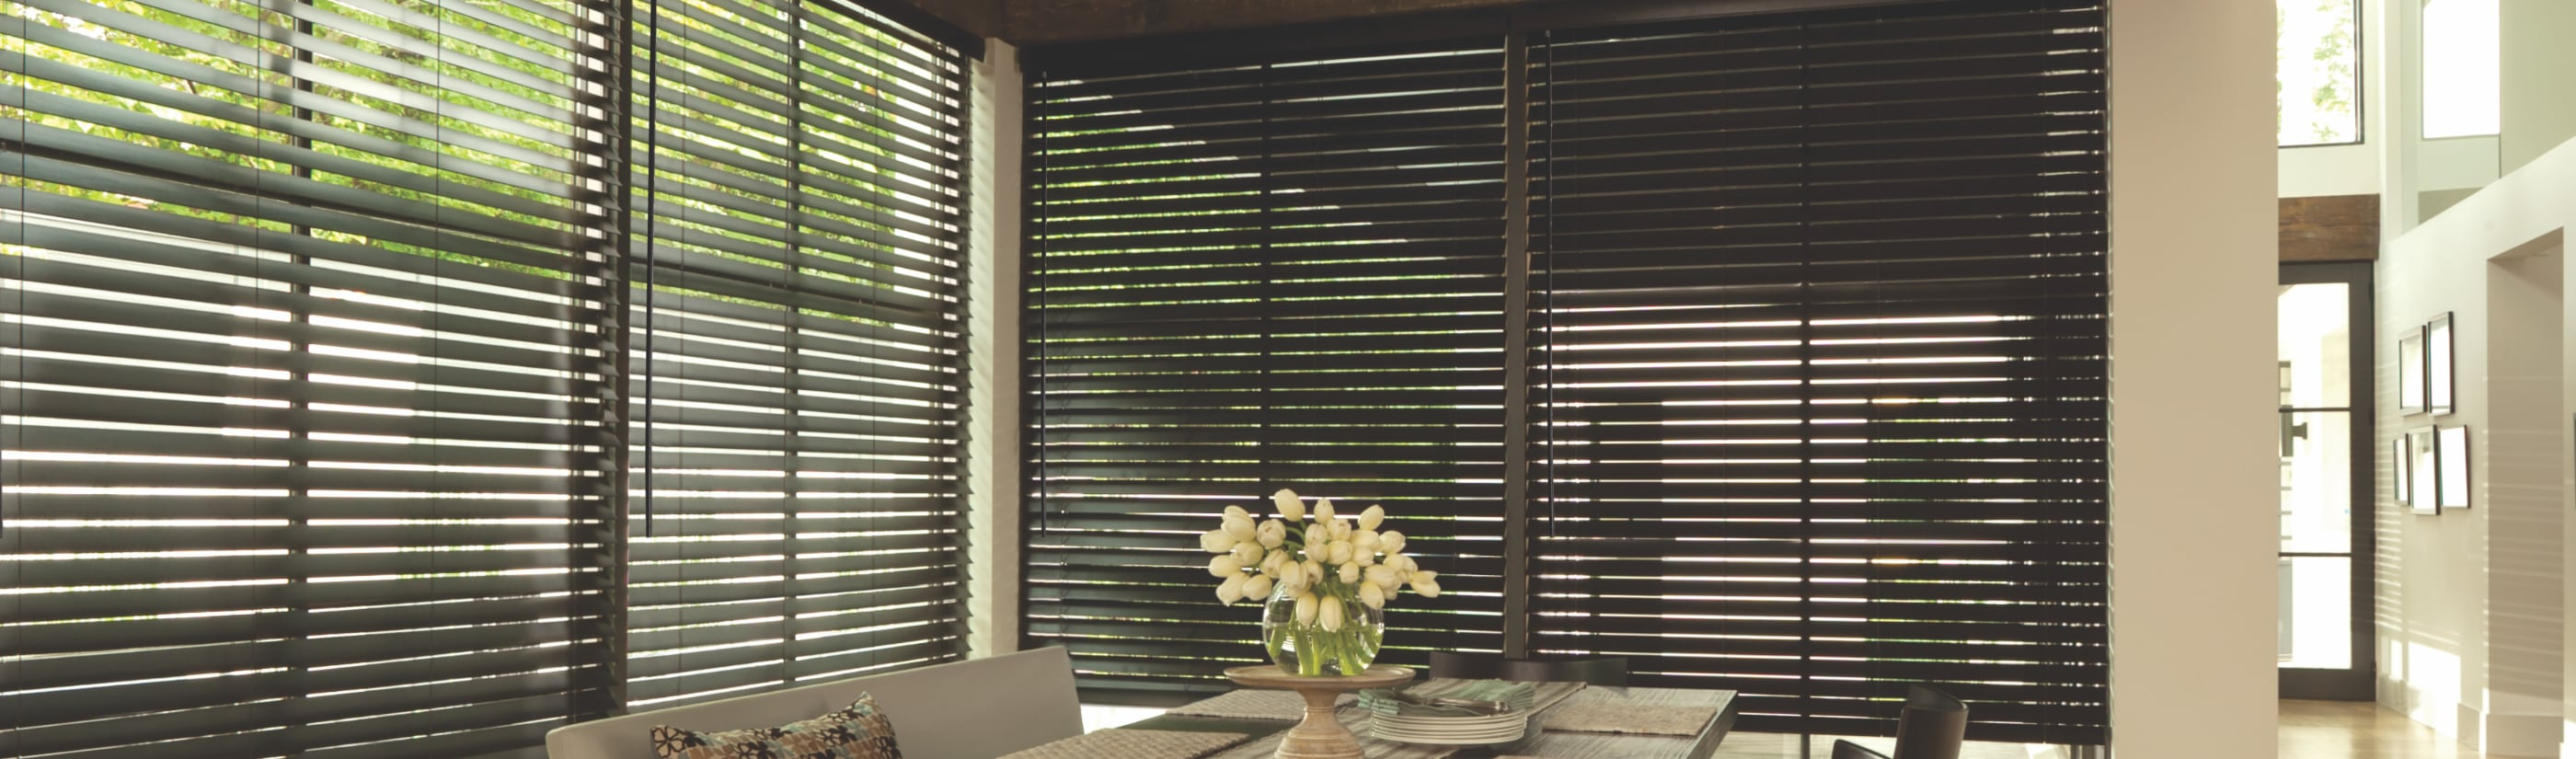 pin blinds curtains drapes window in shades san photos shutters of pictures antonio